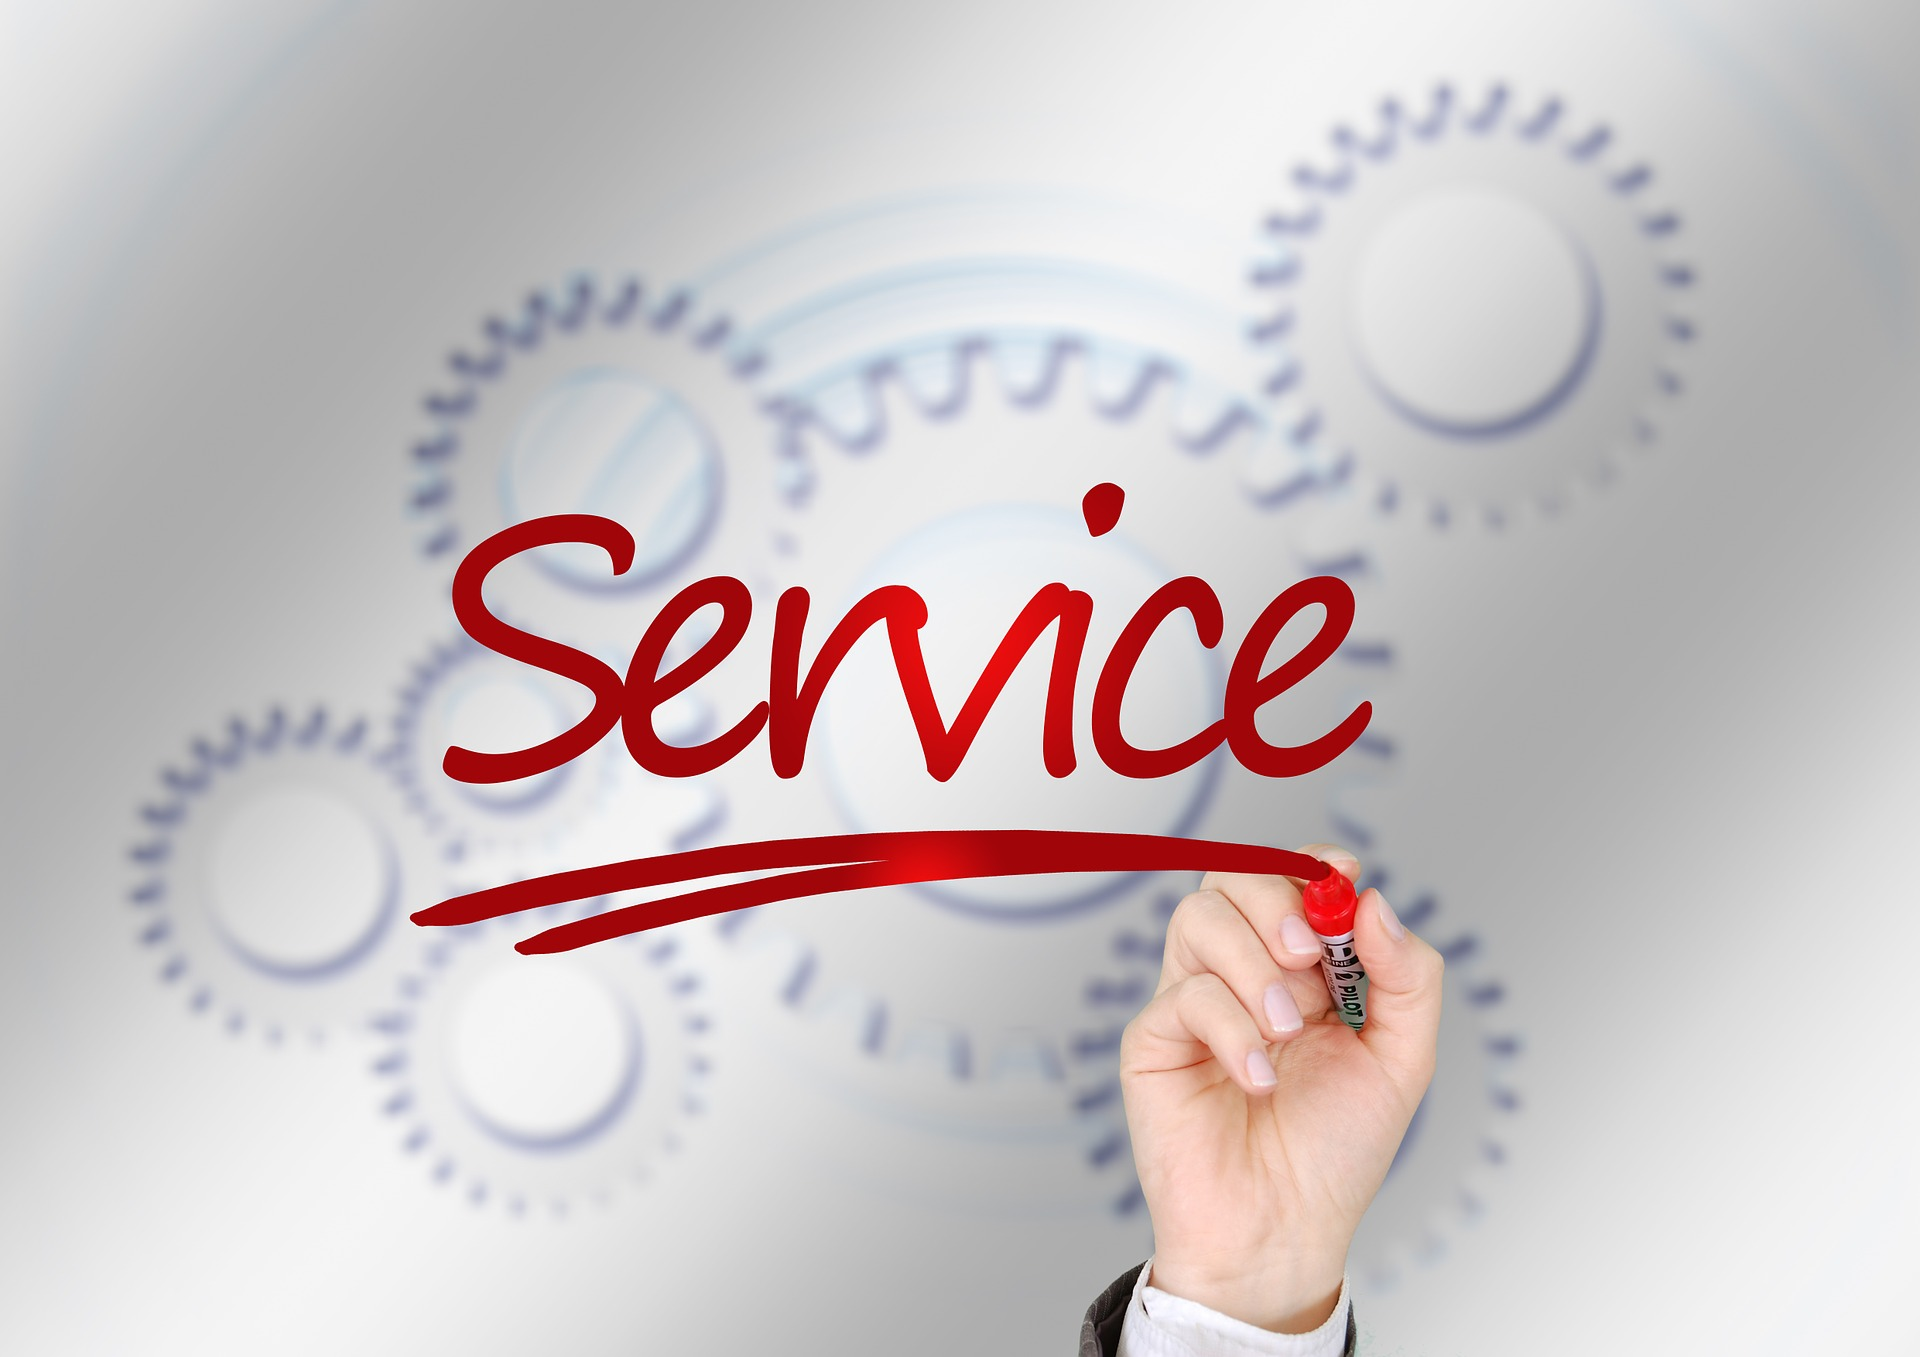 Five Crucial Customer Service Mistakes That Are Costing You Business